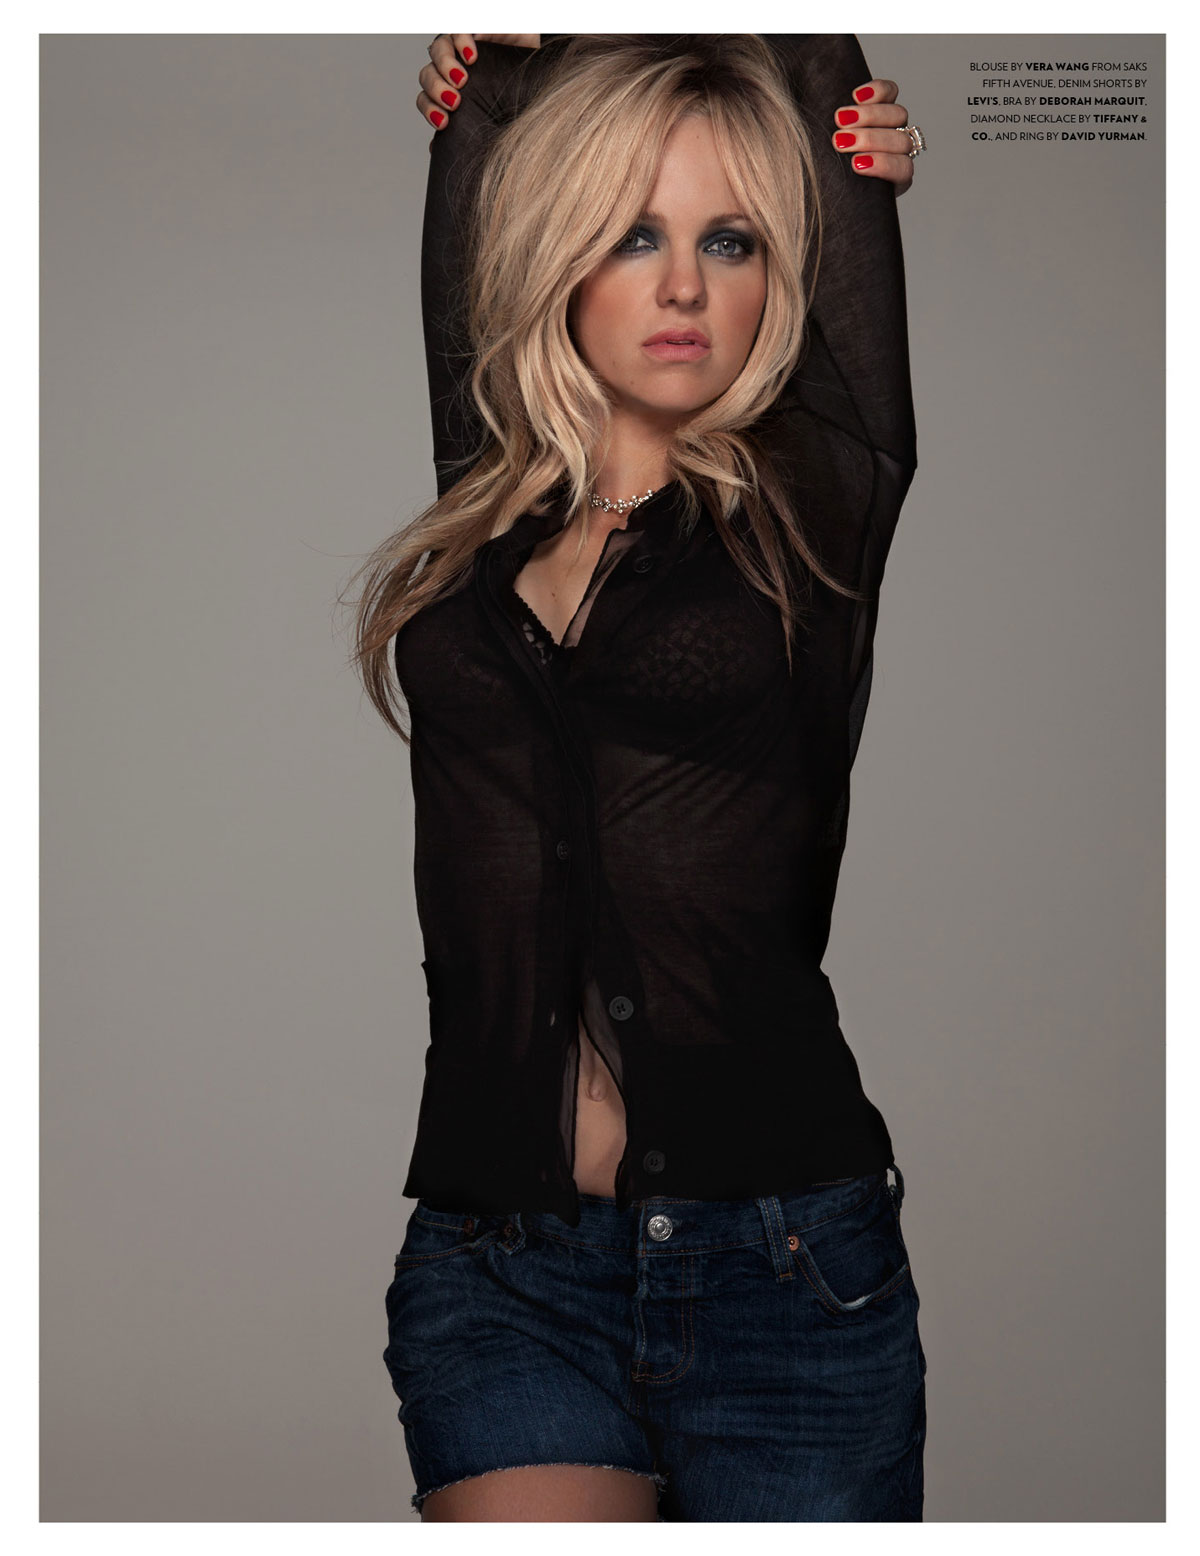 Heronimu actress anna faris flaunt magazine photo shoot for july 2012